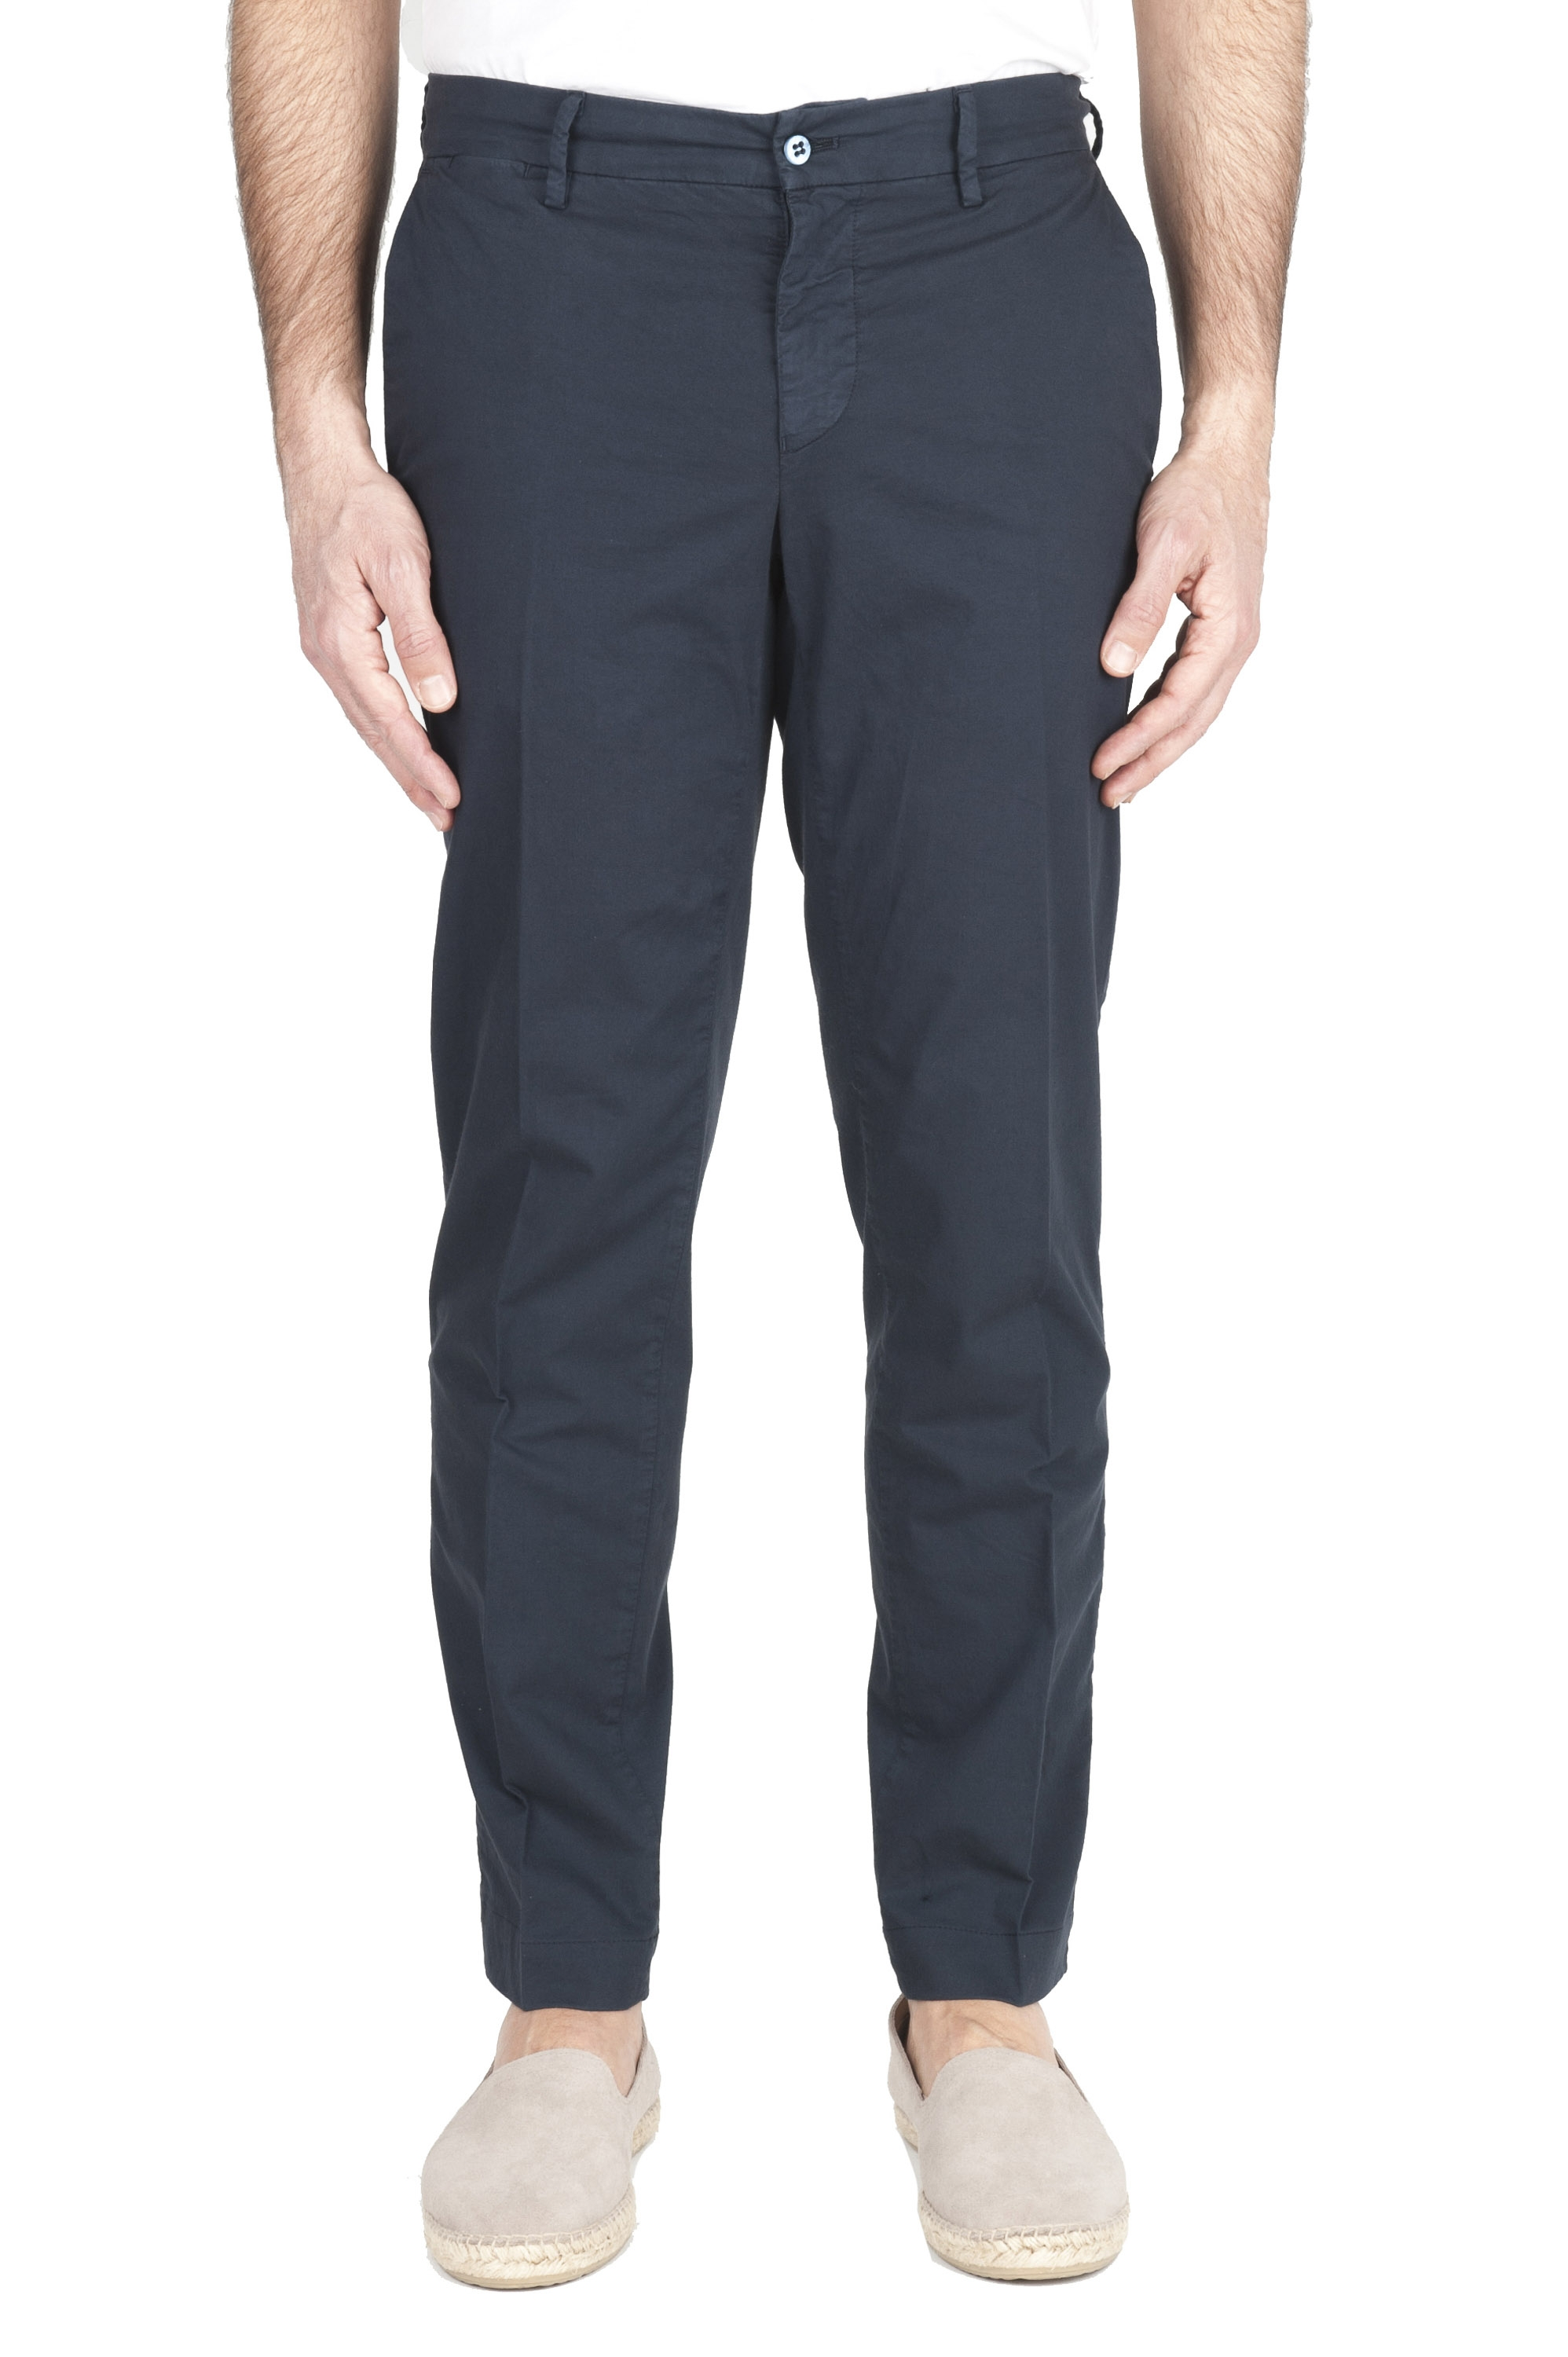 SBU 01965_2020SS Classic chino pants in navy blue stretch cotton 01